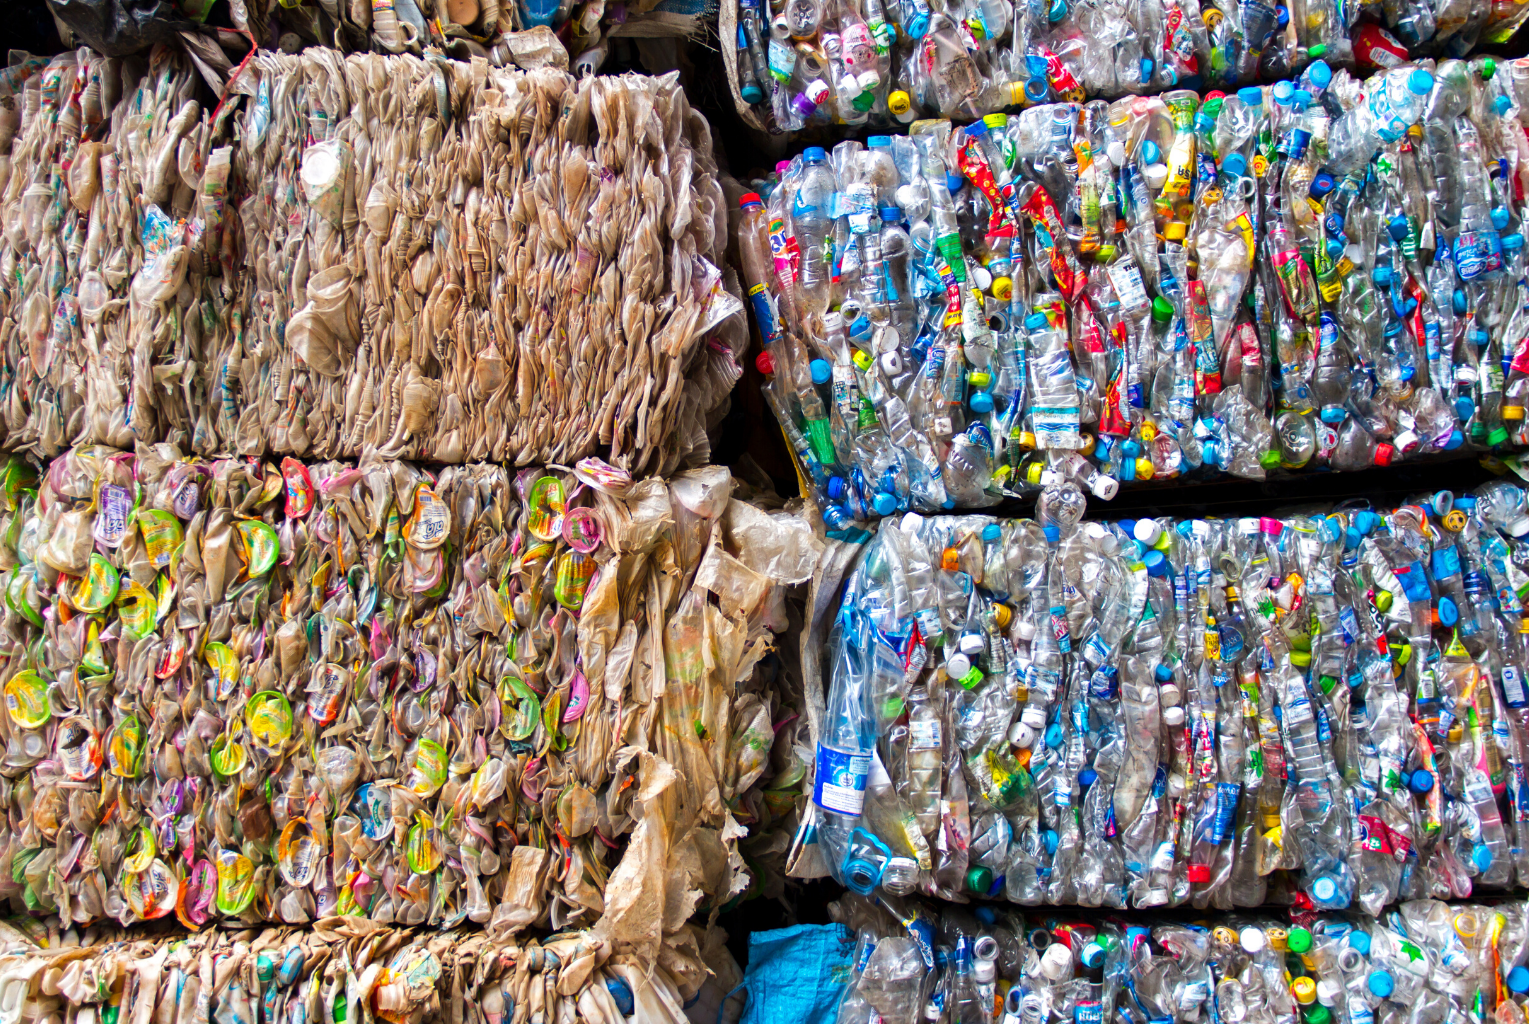 Waste and Recycling Impacts